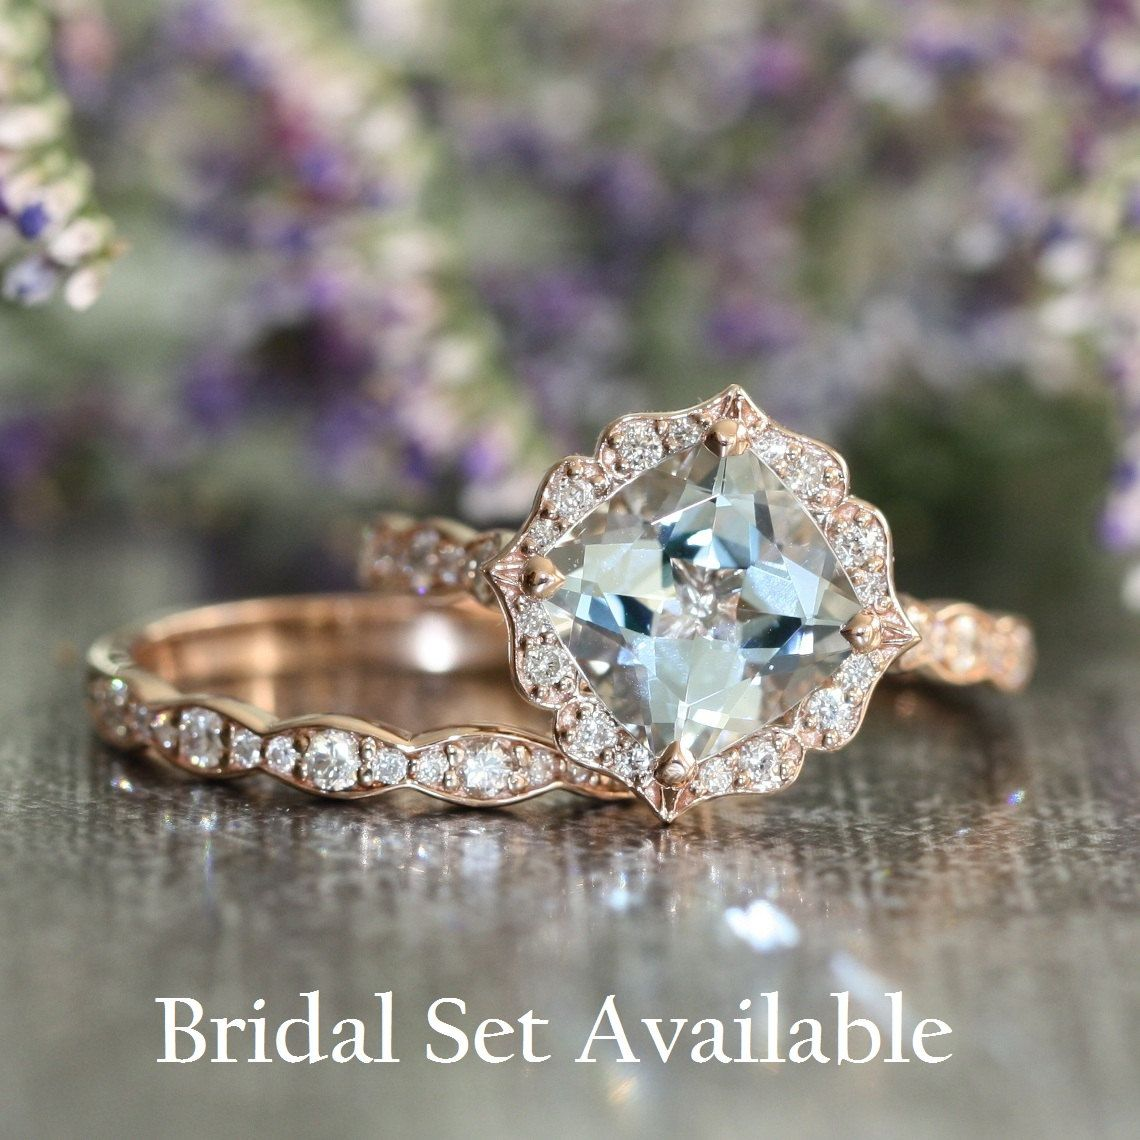 blue ring real jinjiantrade rings gold diamond solid white from natural march wedding women for gems product band birthstone engagement aquamarine